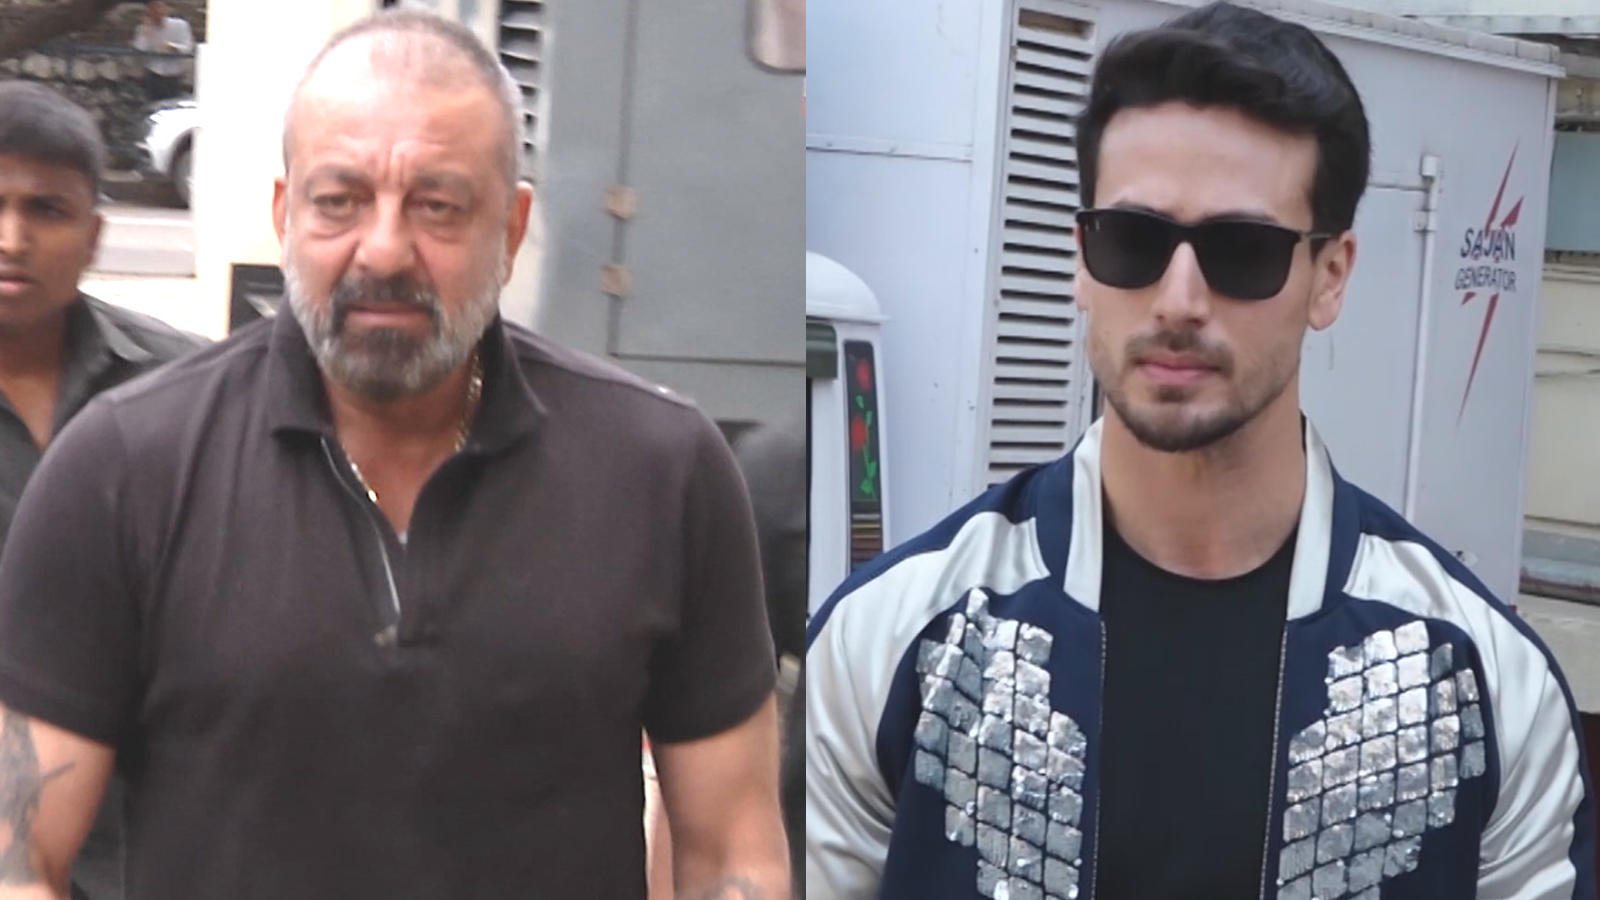 Sanjay Dutt wants to cast Tiger Shroff in sequel of 'Khal Nayak'